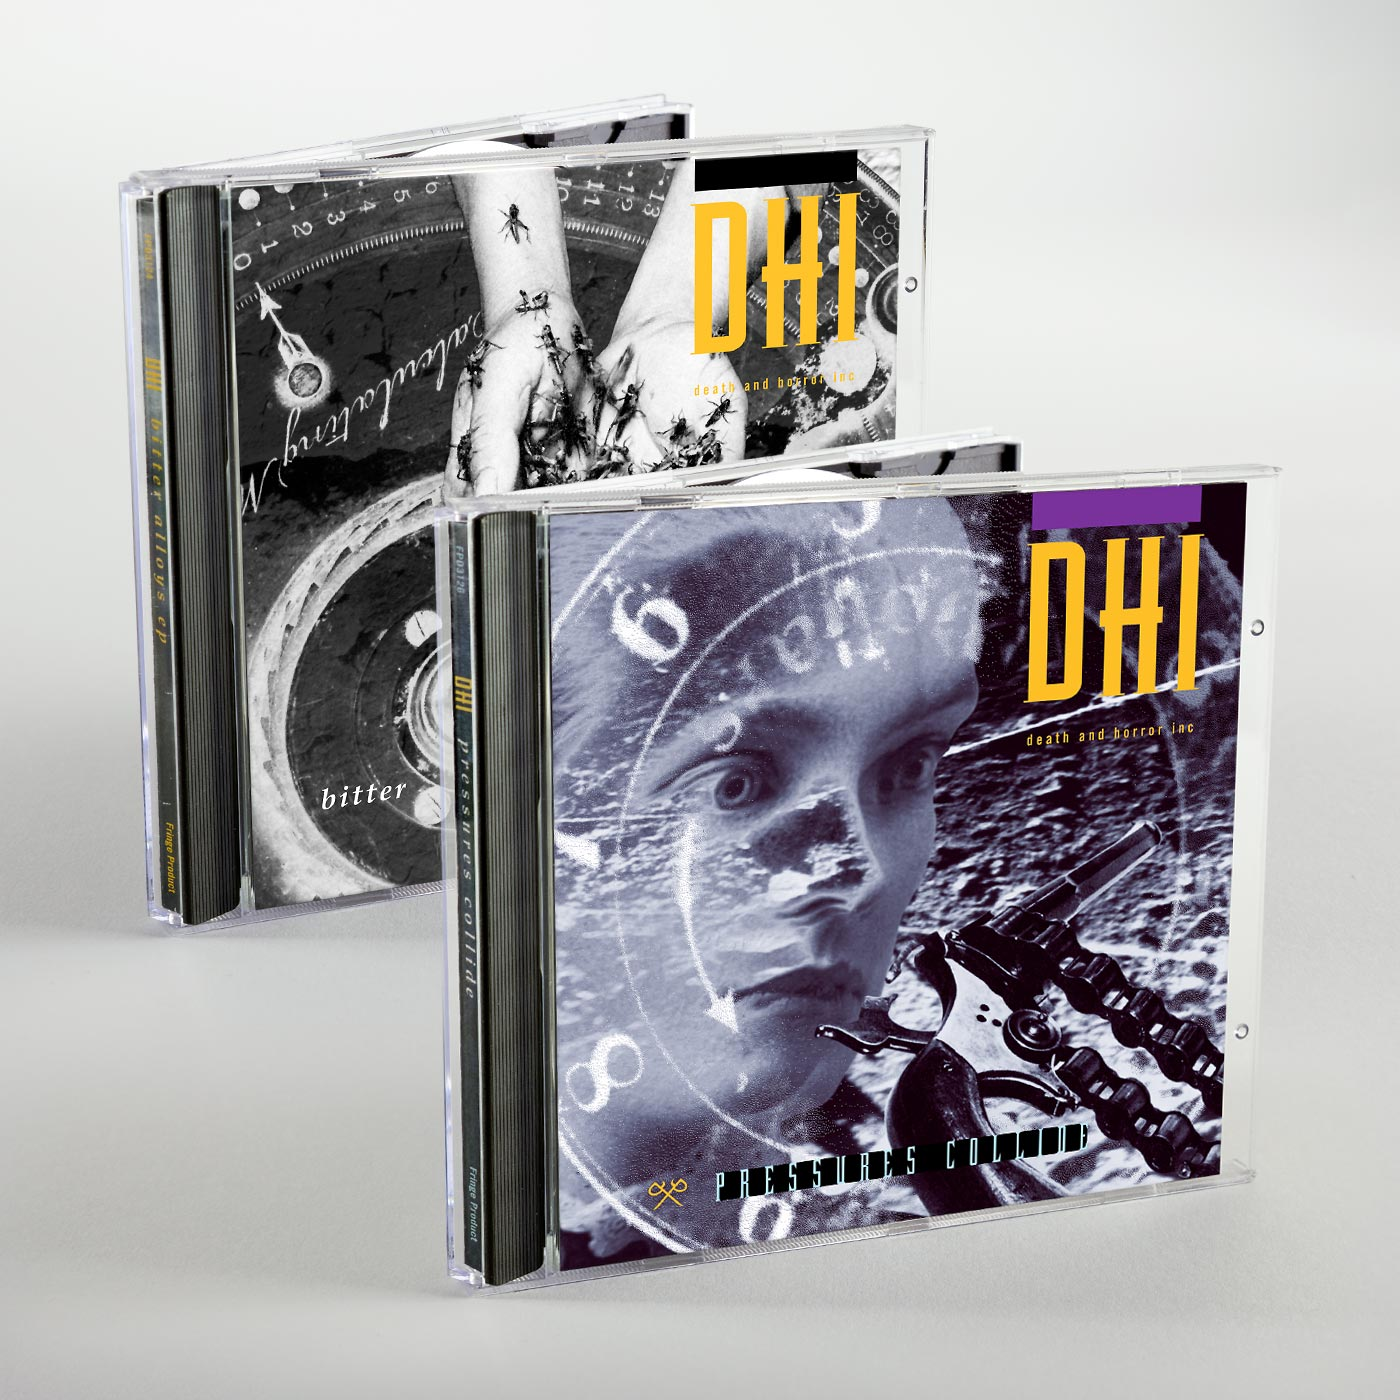 DHI (death and horror inc) Pressures Collide CD and Bitter Alloys CD jewel cases